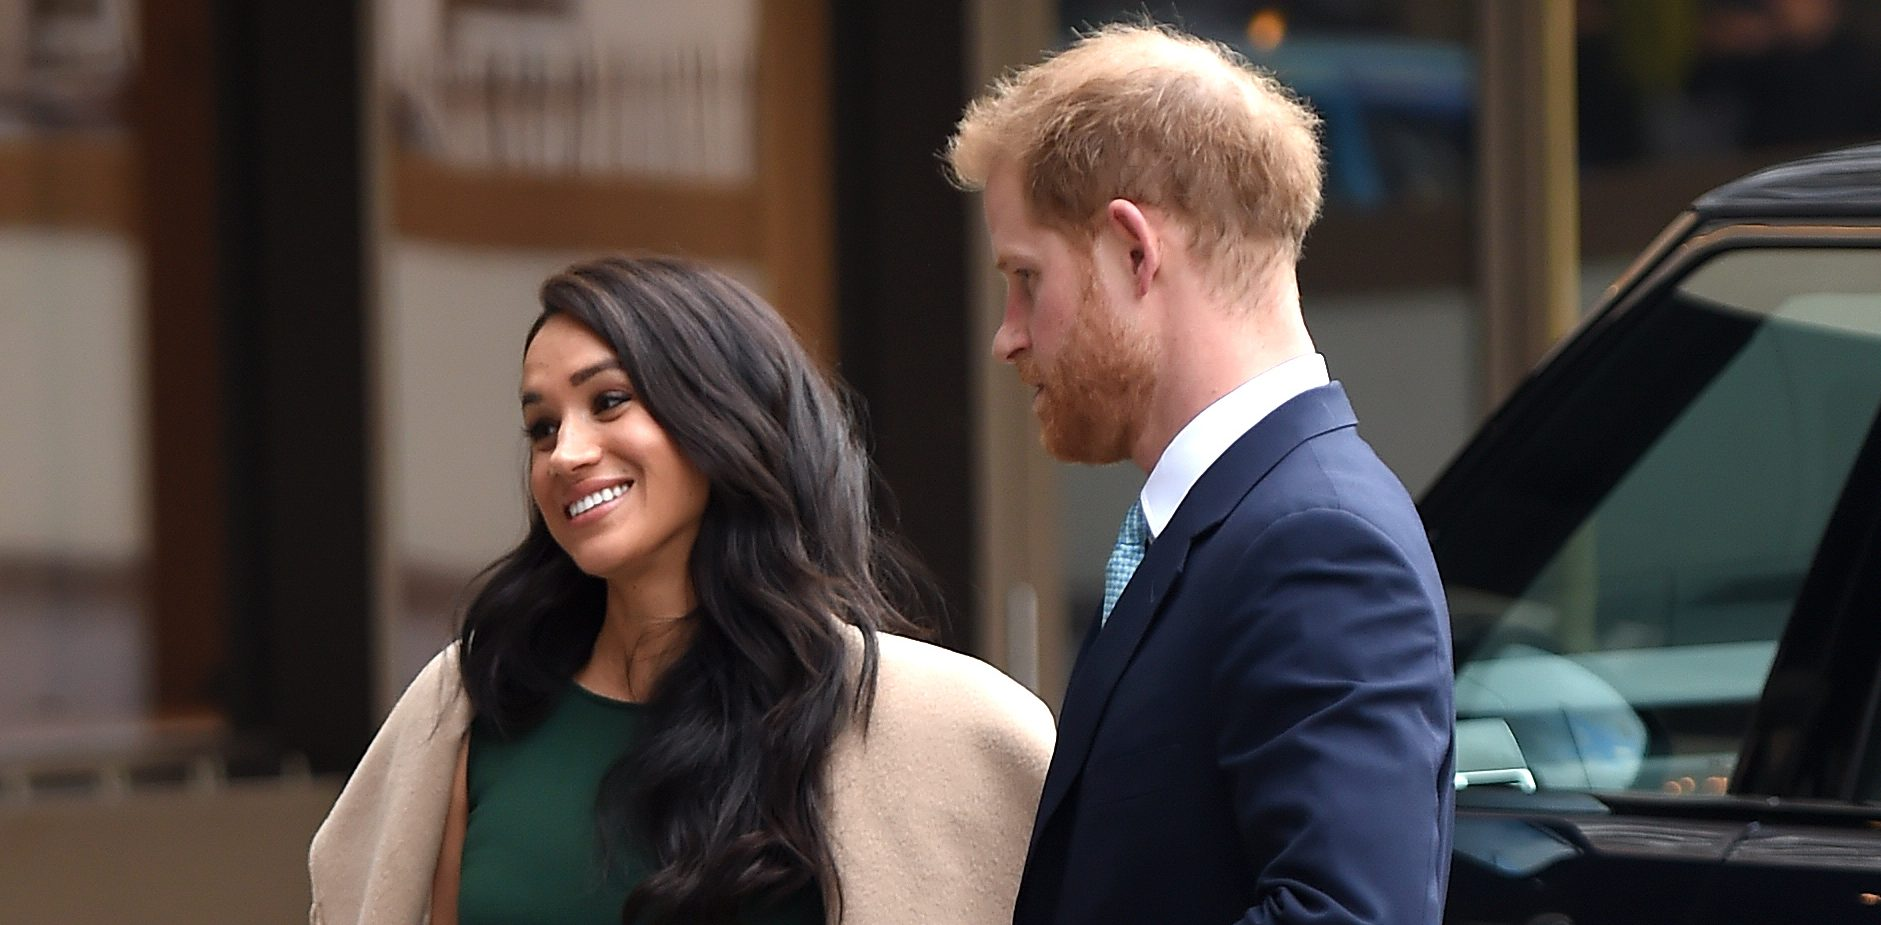 Prince Harry told Meghan she looked 'amazing' ahead of WellChild Awards